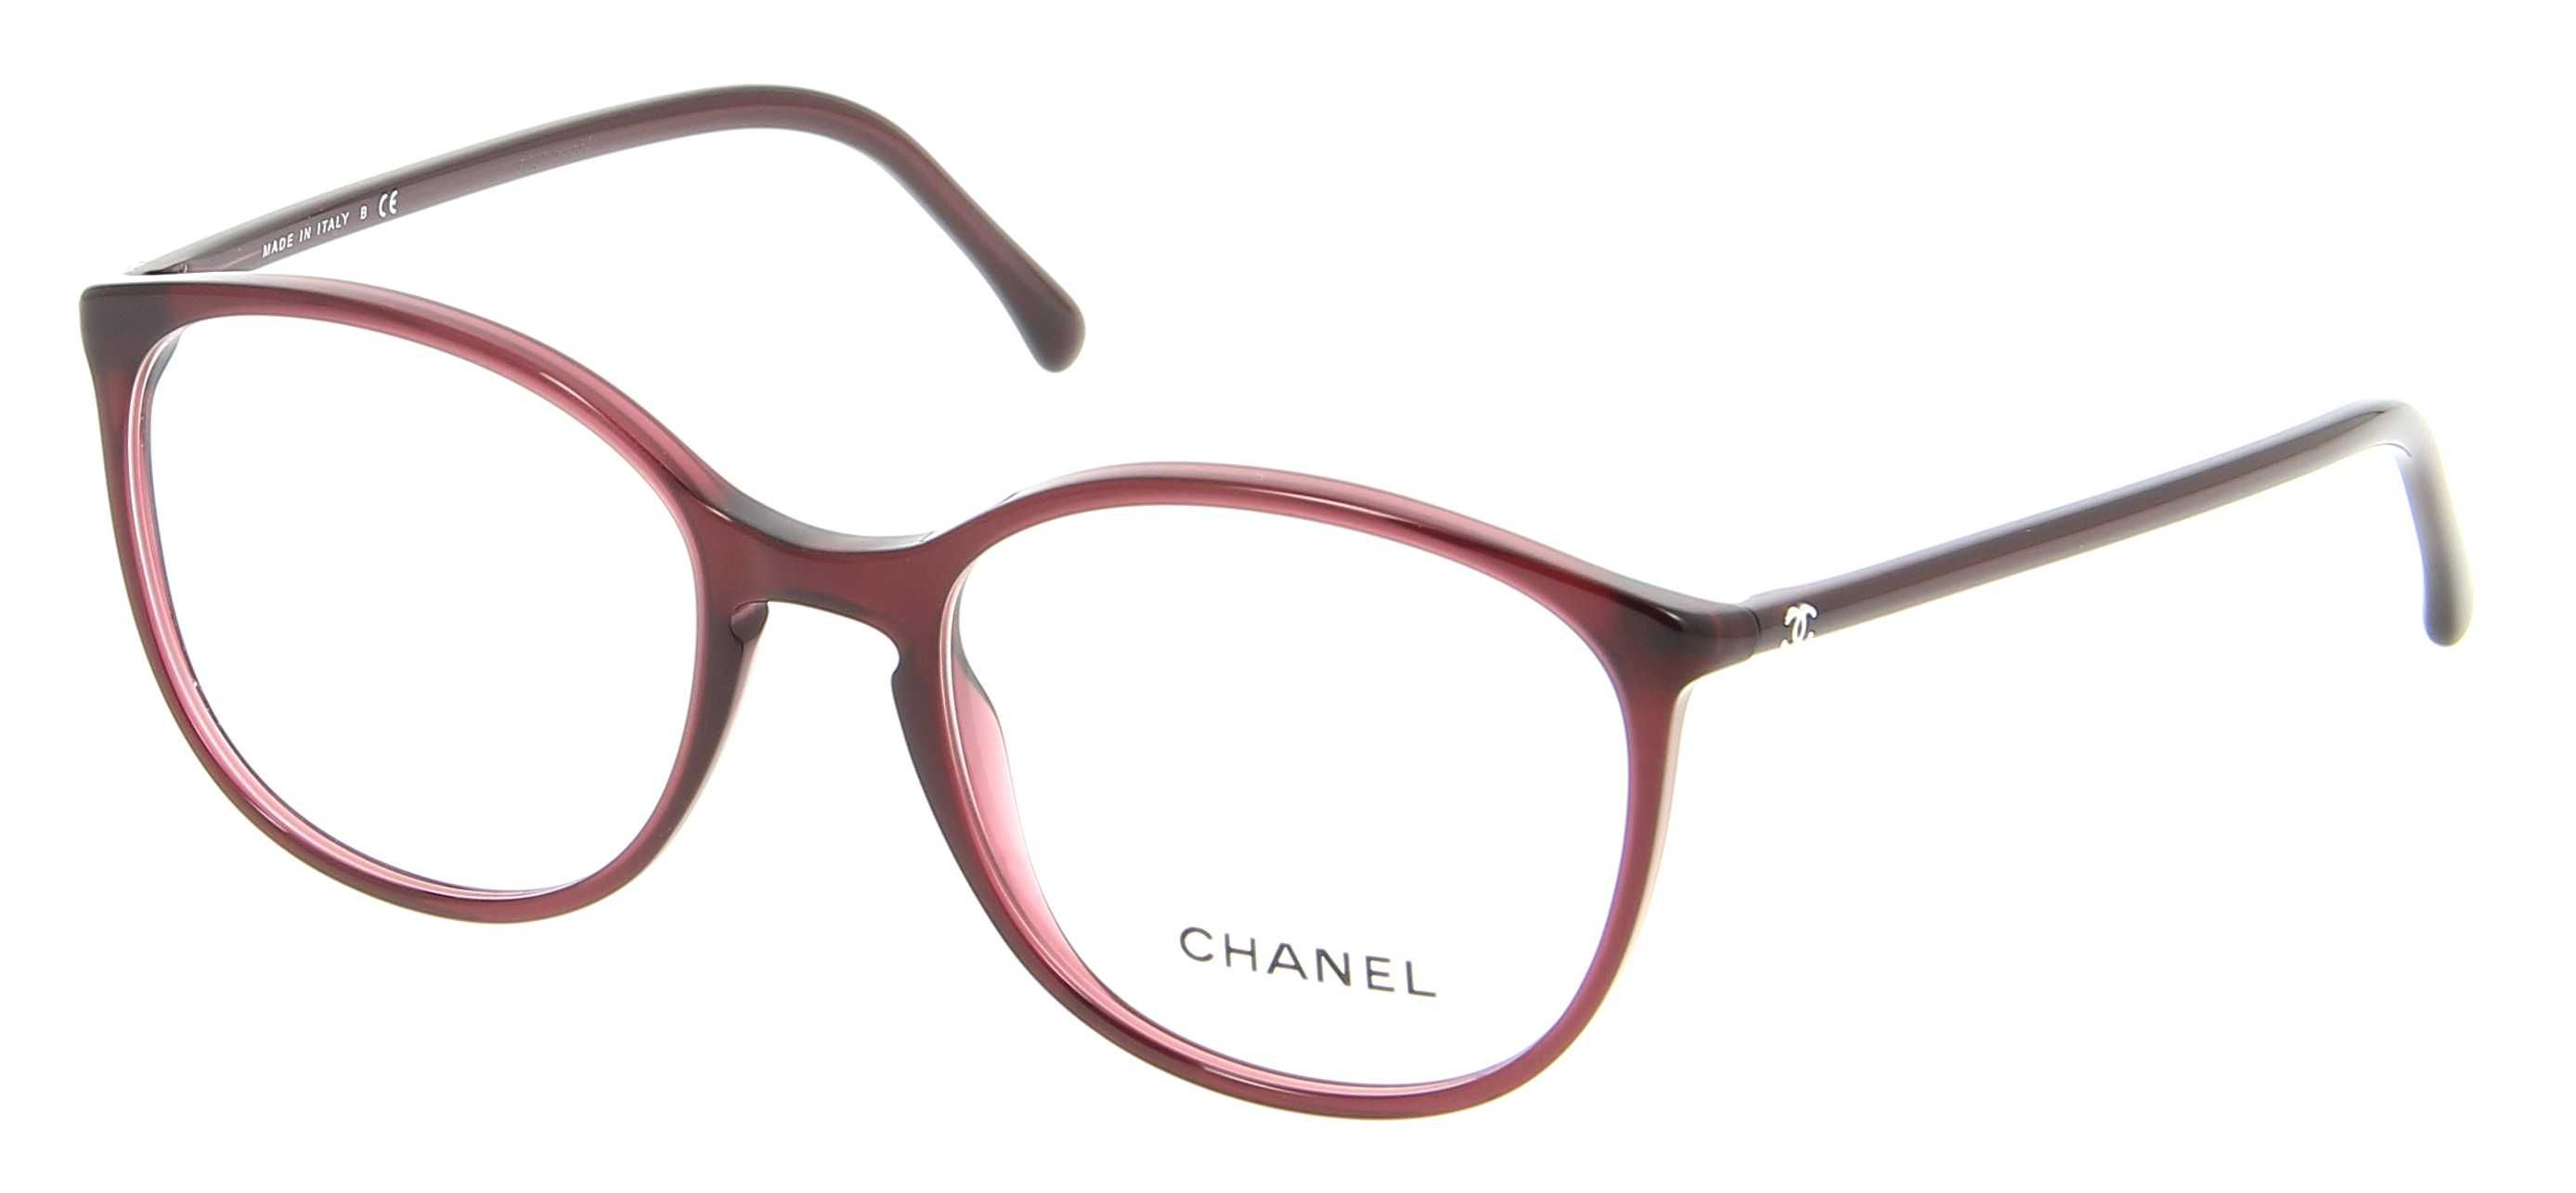 chanel 3282. lunettes de vue chanel ch 3283q c1295 Écaille medium | glasses pinterest 3282